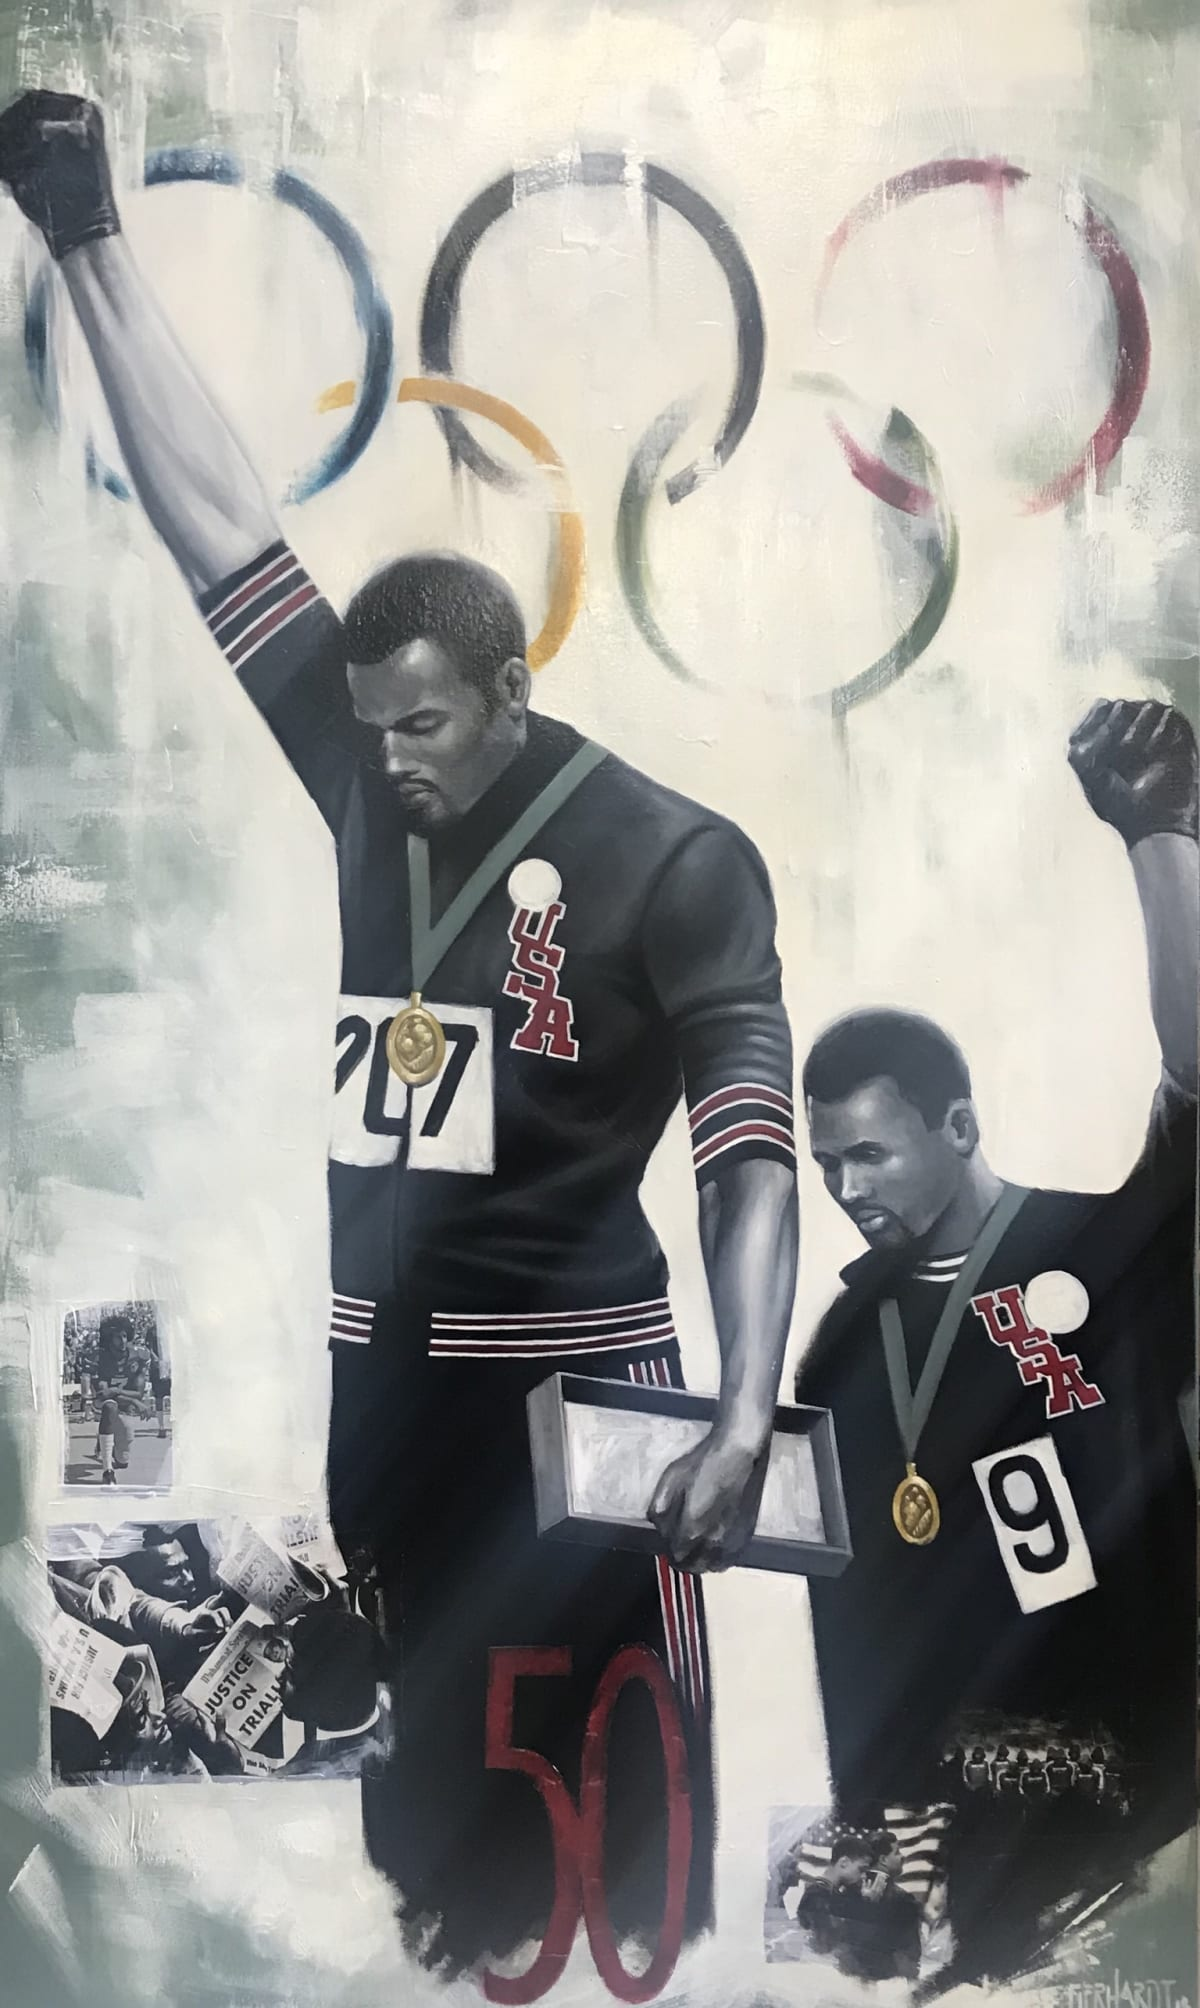 Curtis Gerhardt 50 Years Protest, 2019 Oil on Canvas 36 x 60